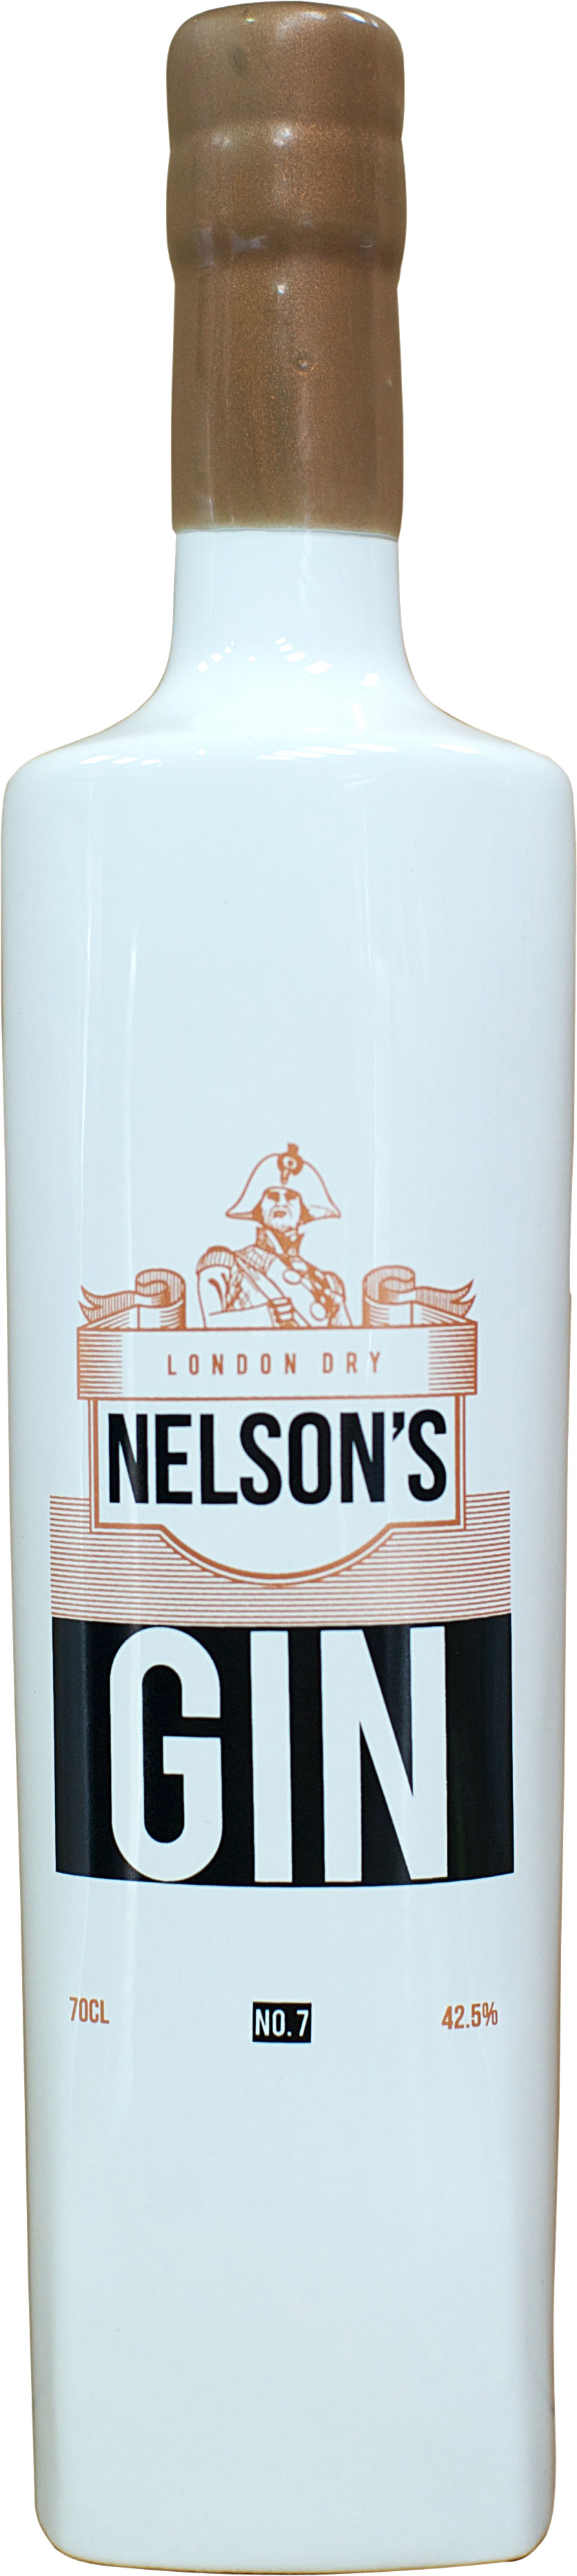 Nelson's - London Dry Gin 70cl Bottle